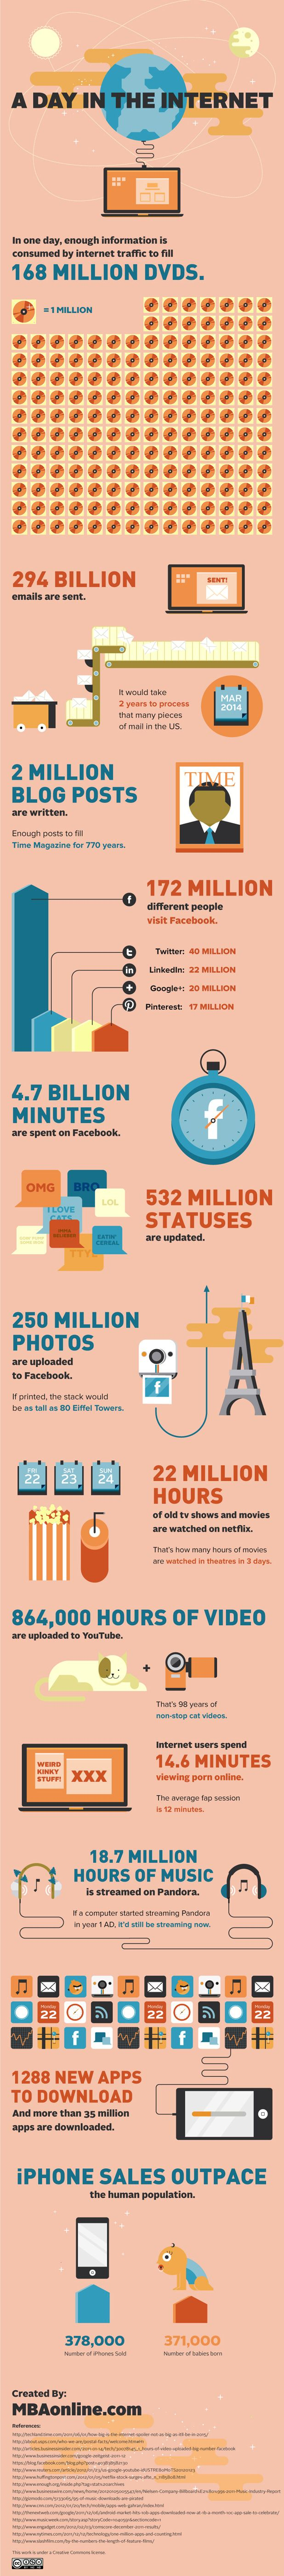 One Day in the Internet! #infographic